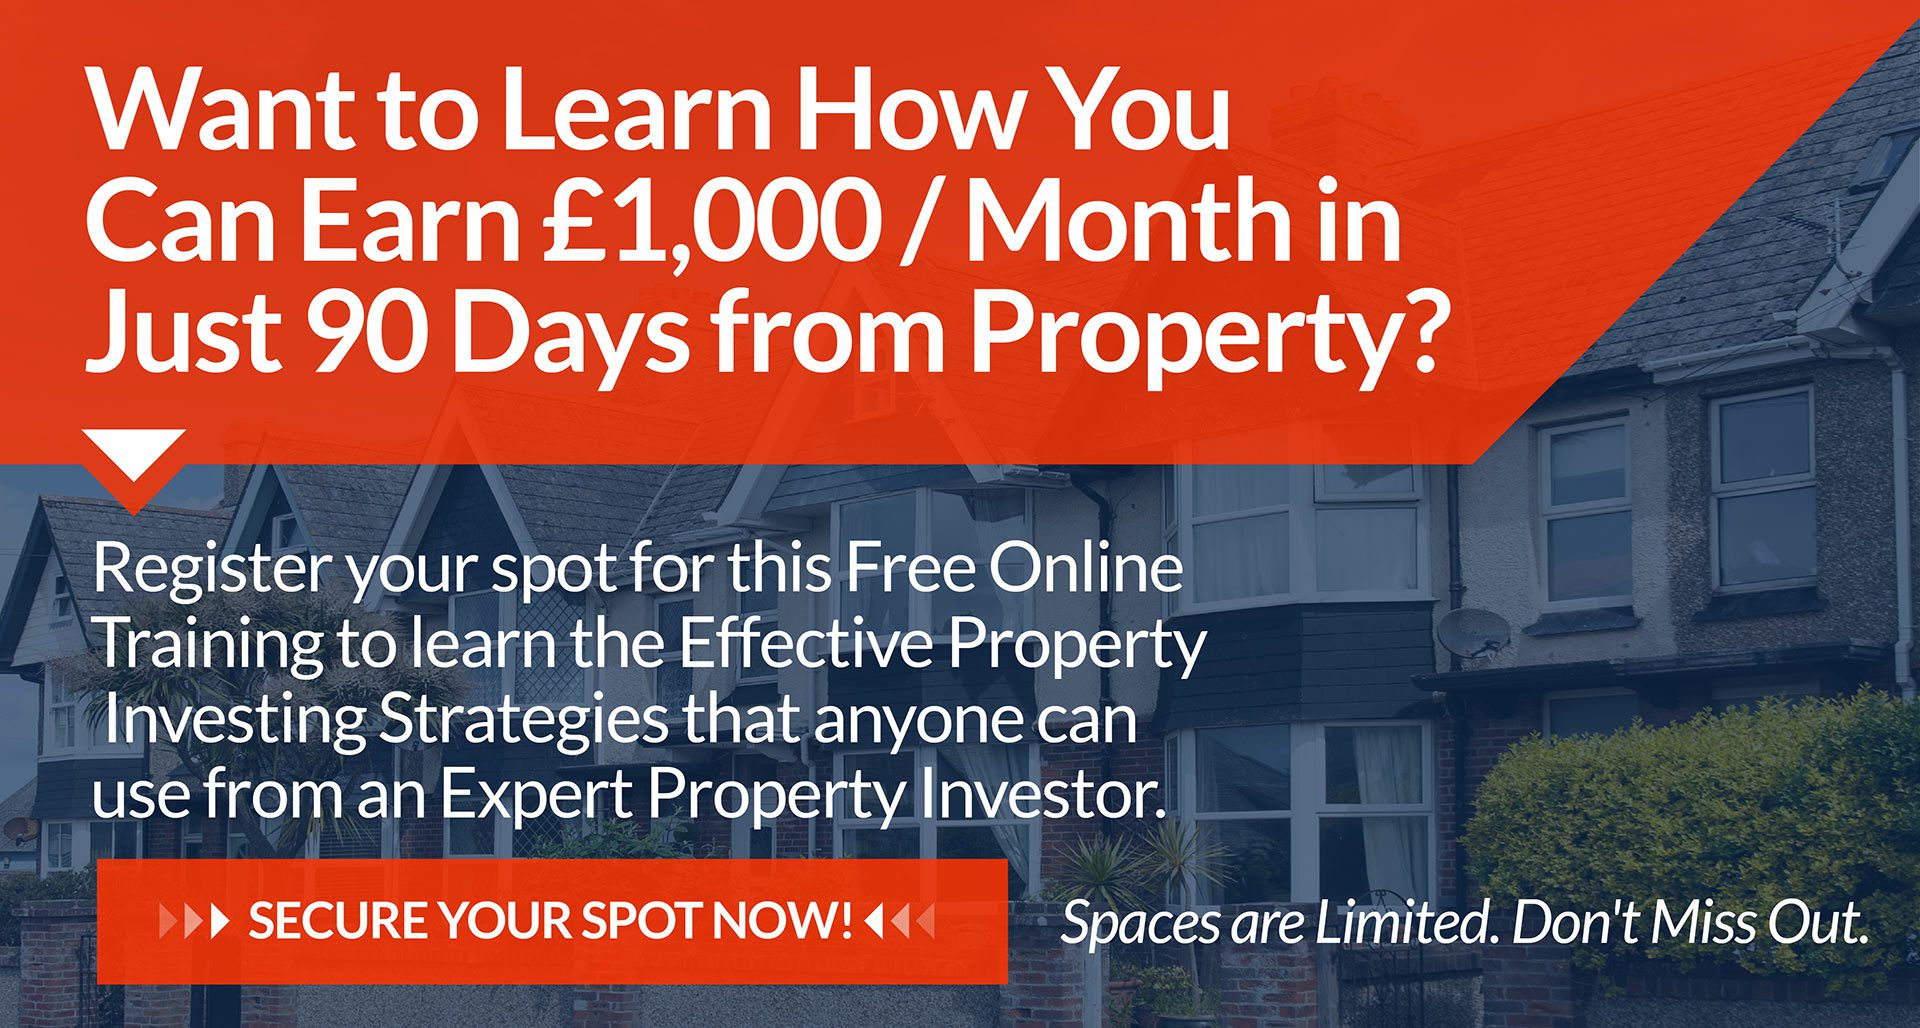 property investing training online